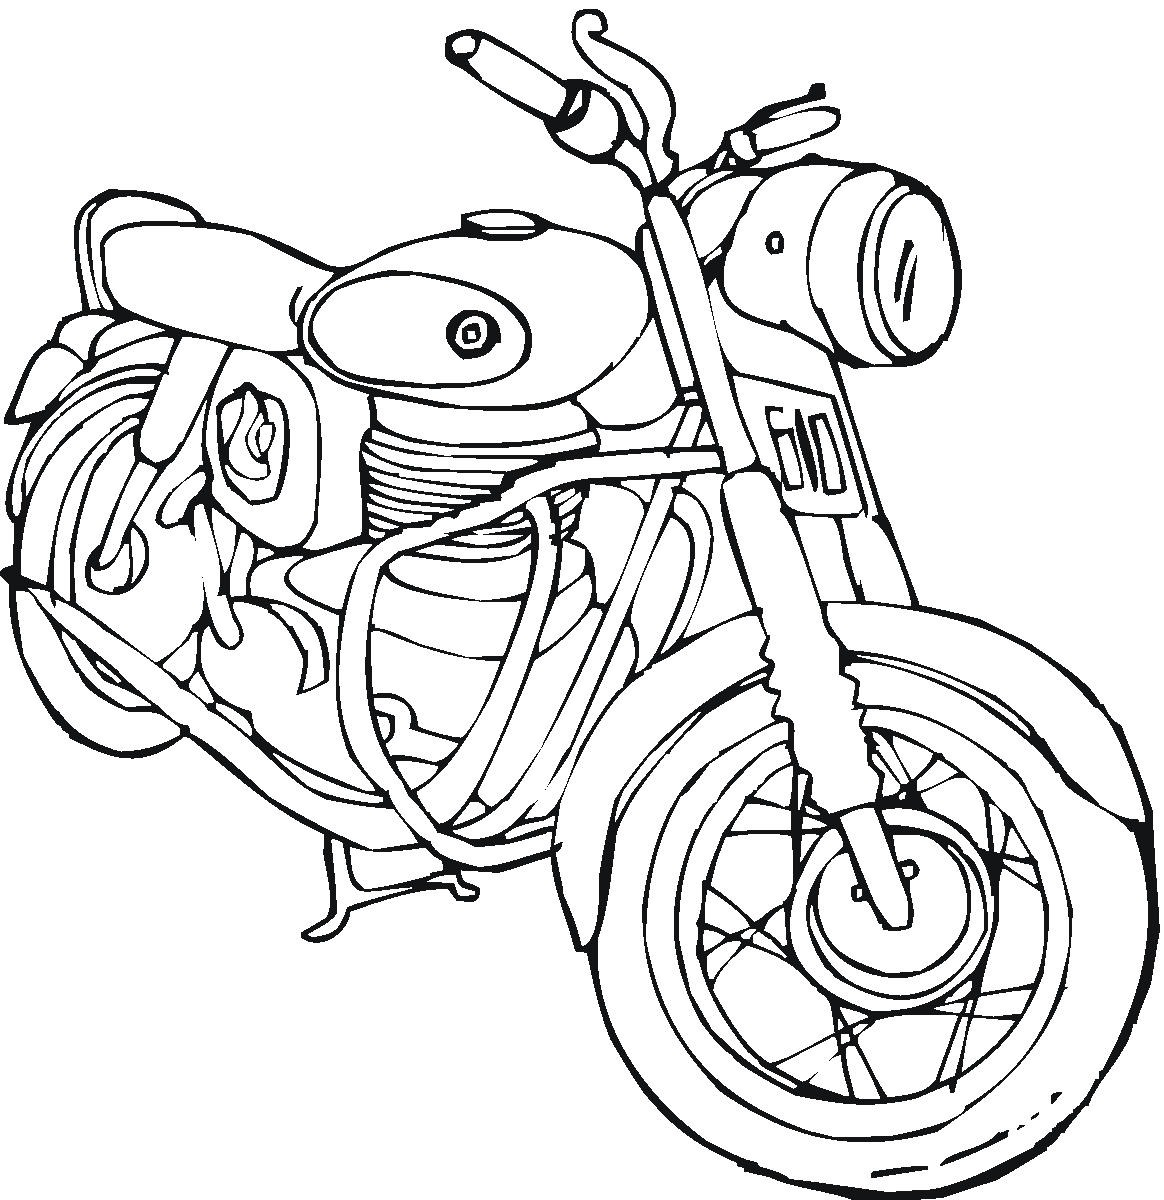 free biker coloring pages - photo#7